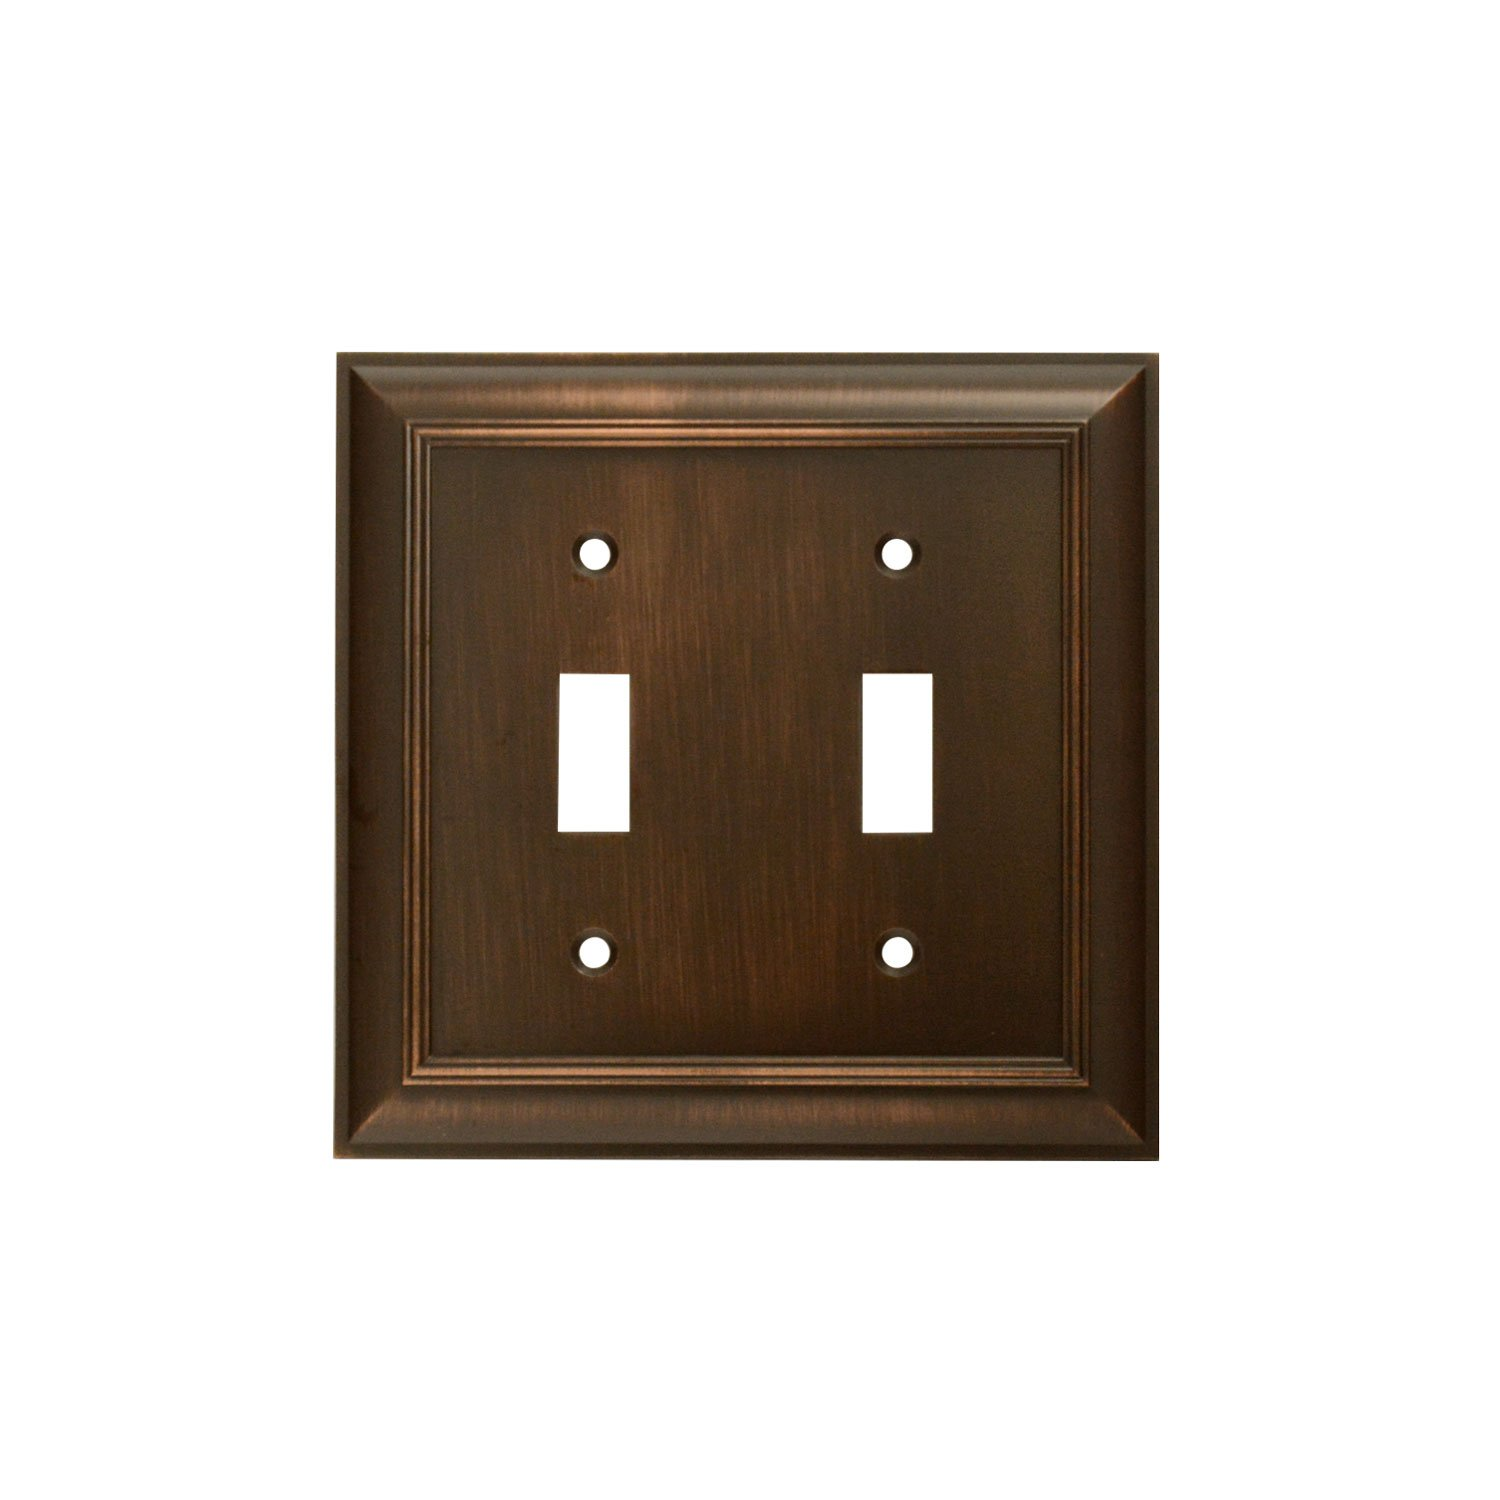 CKP Brand #31193 Double Switch Wall Plate, Oil-Rubbed Bronze